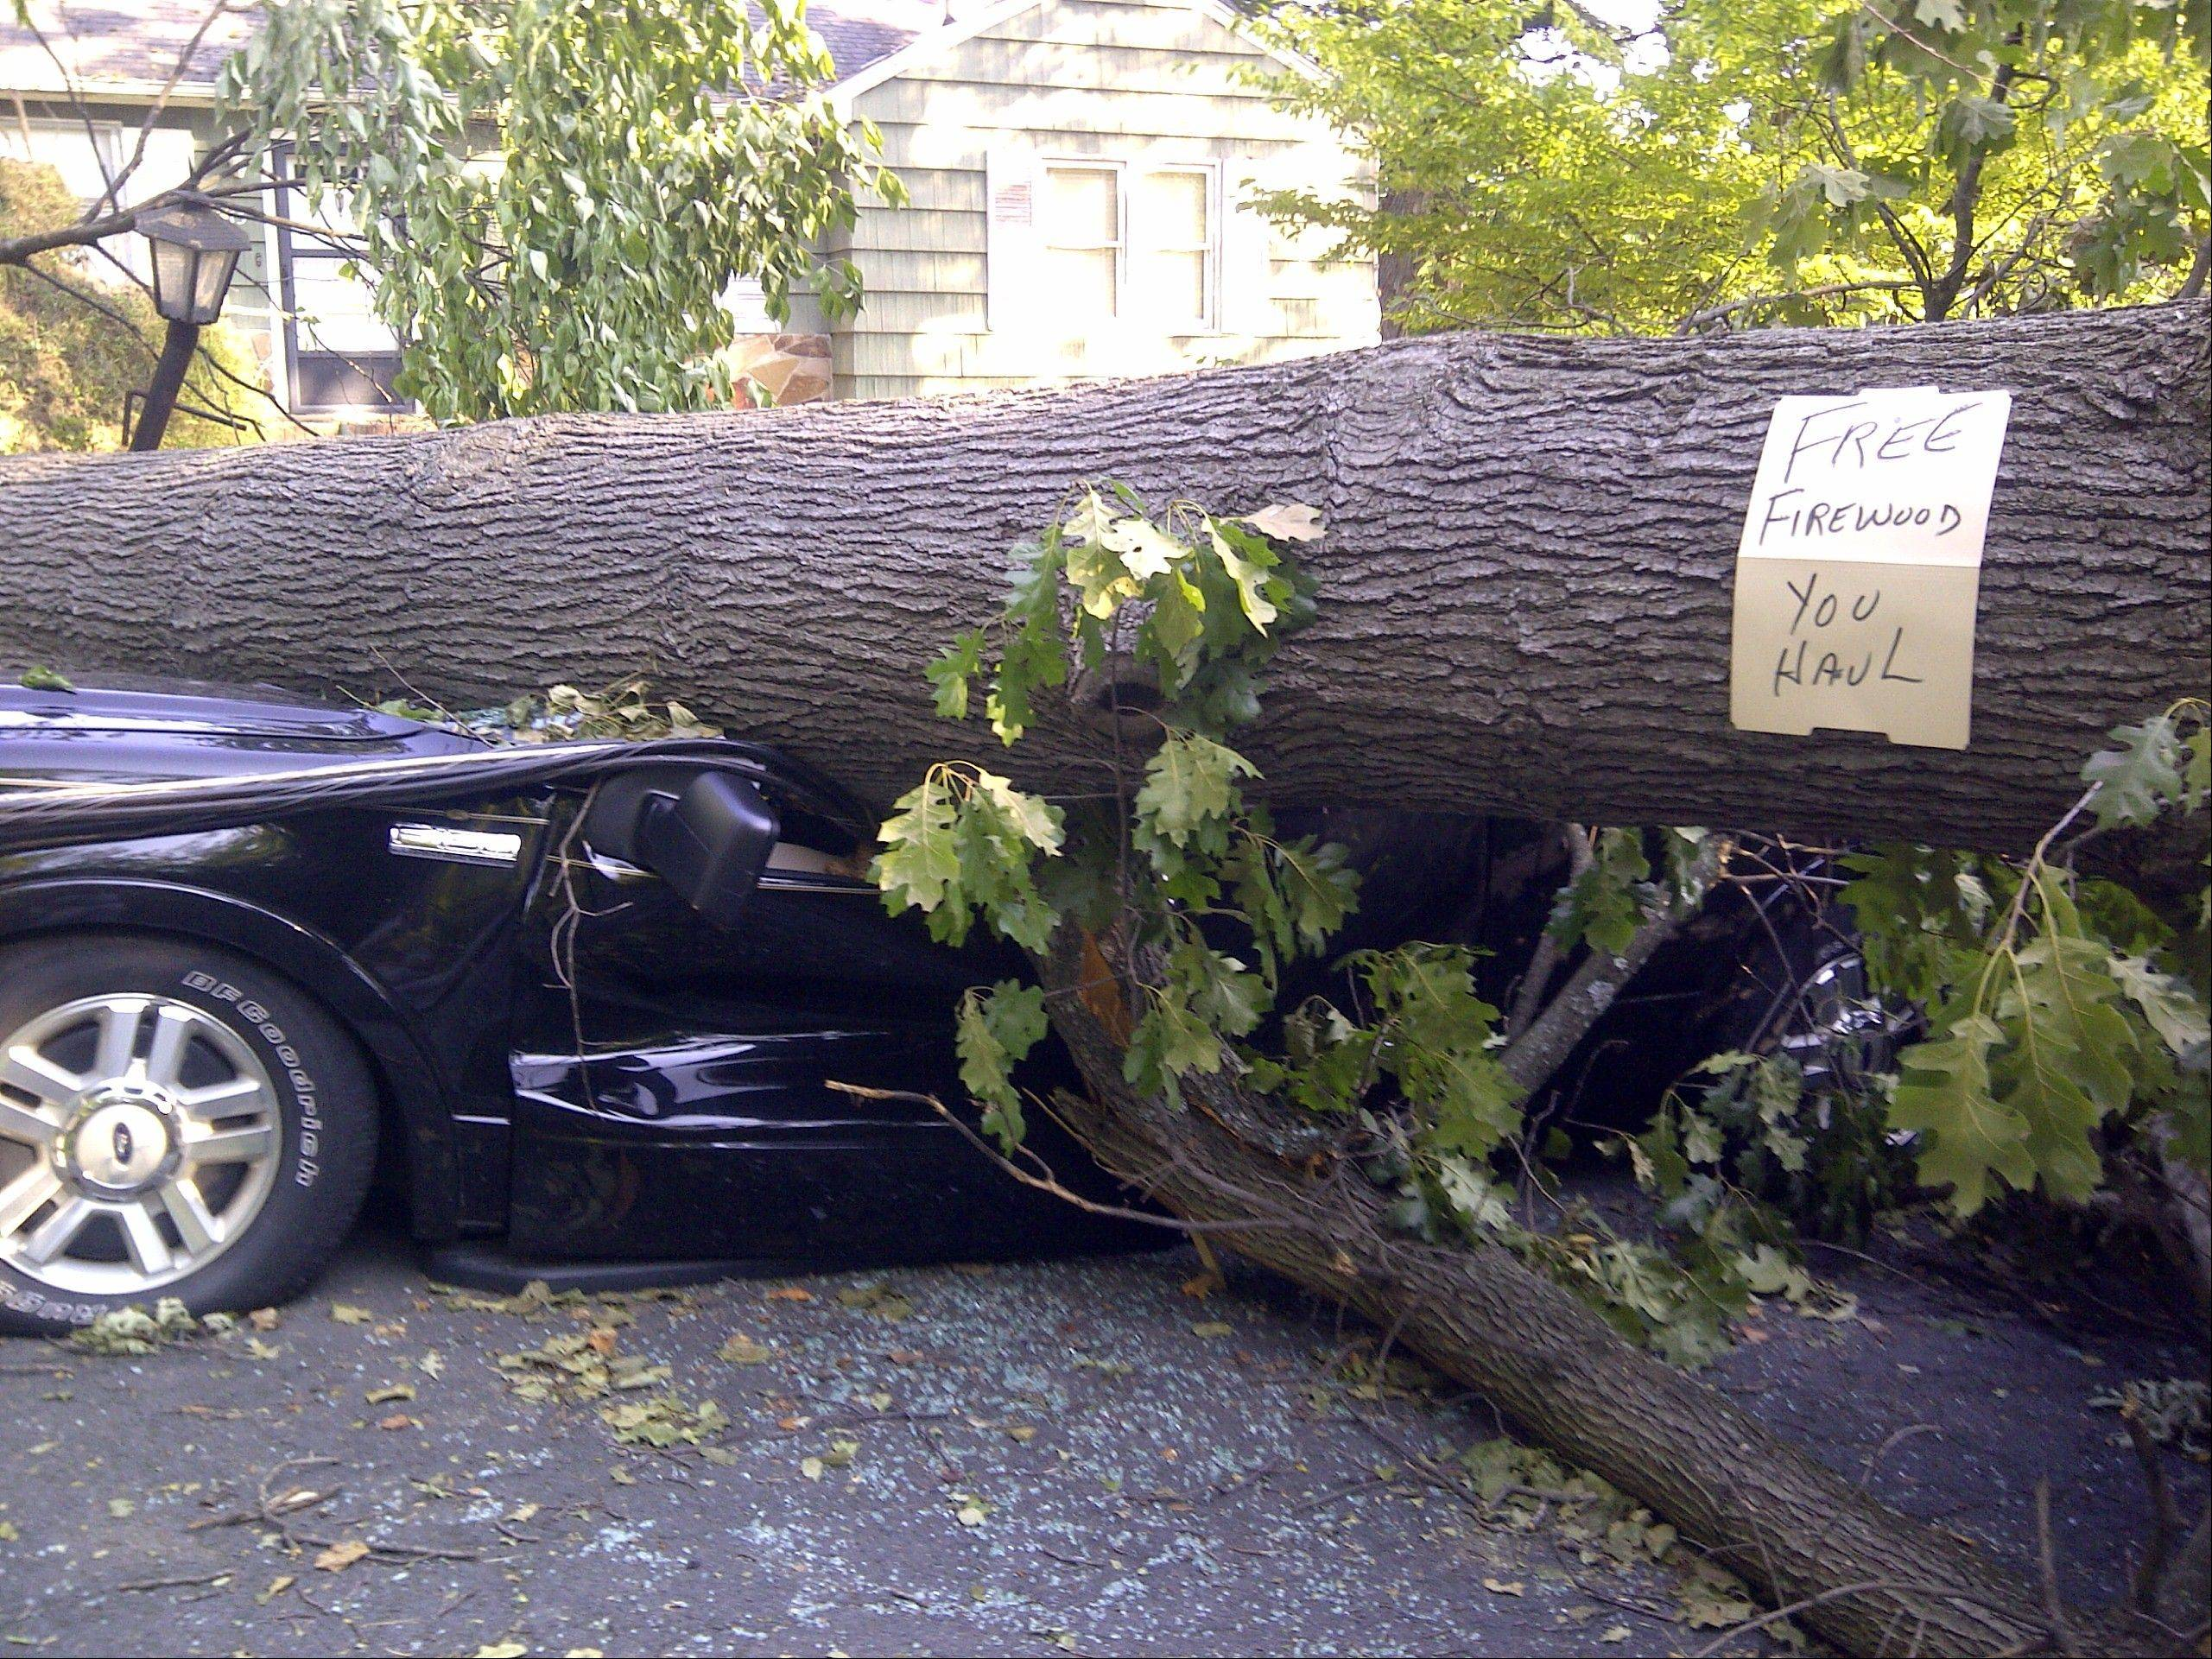 A tree sitting atop a vehicle offers free firewood in Falls Church, Va., Monday, as cleanup continued after Friday�s storm, Around 2 million utility customers are without electricity across a swath of states along the East Coast and as far west as Illinois as the area recovers from a round of summer storms that has also caused at least a dozen deaths.